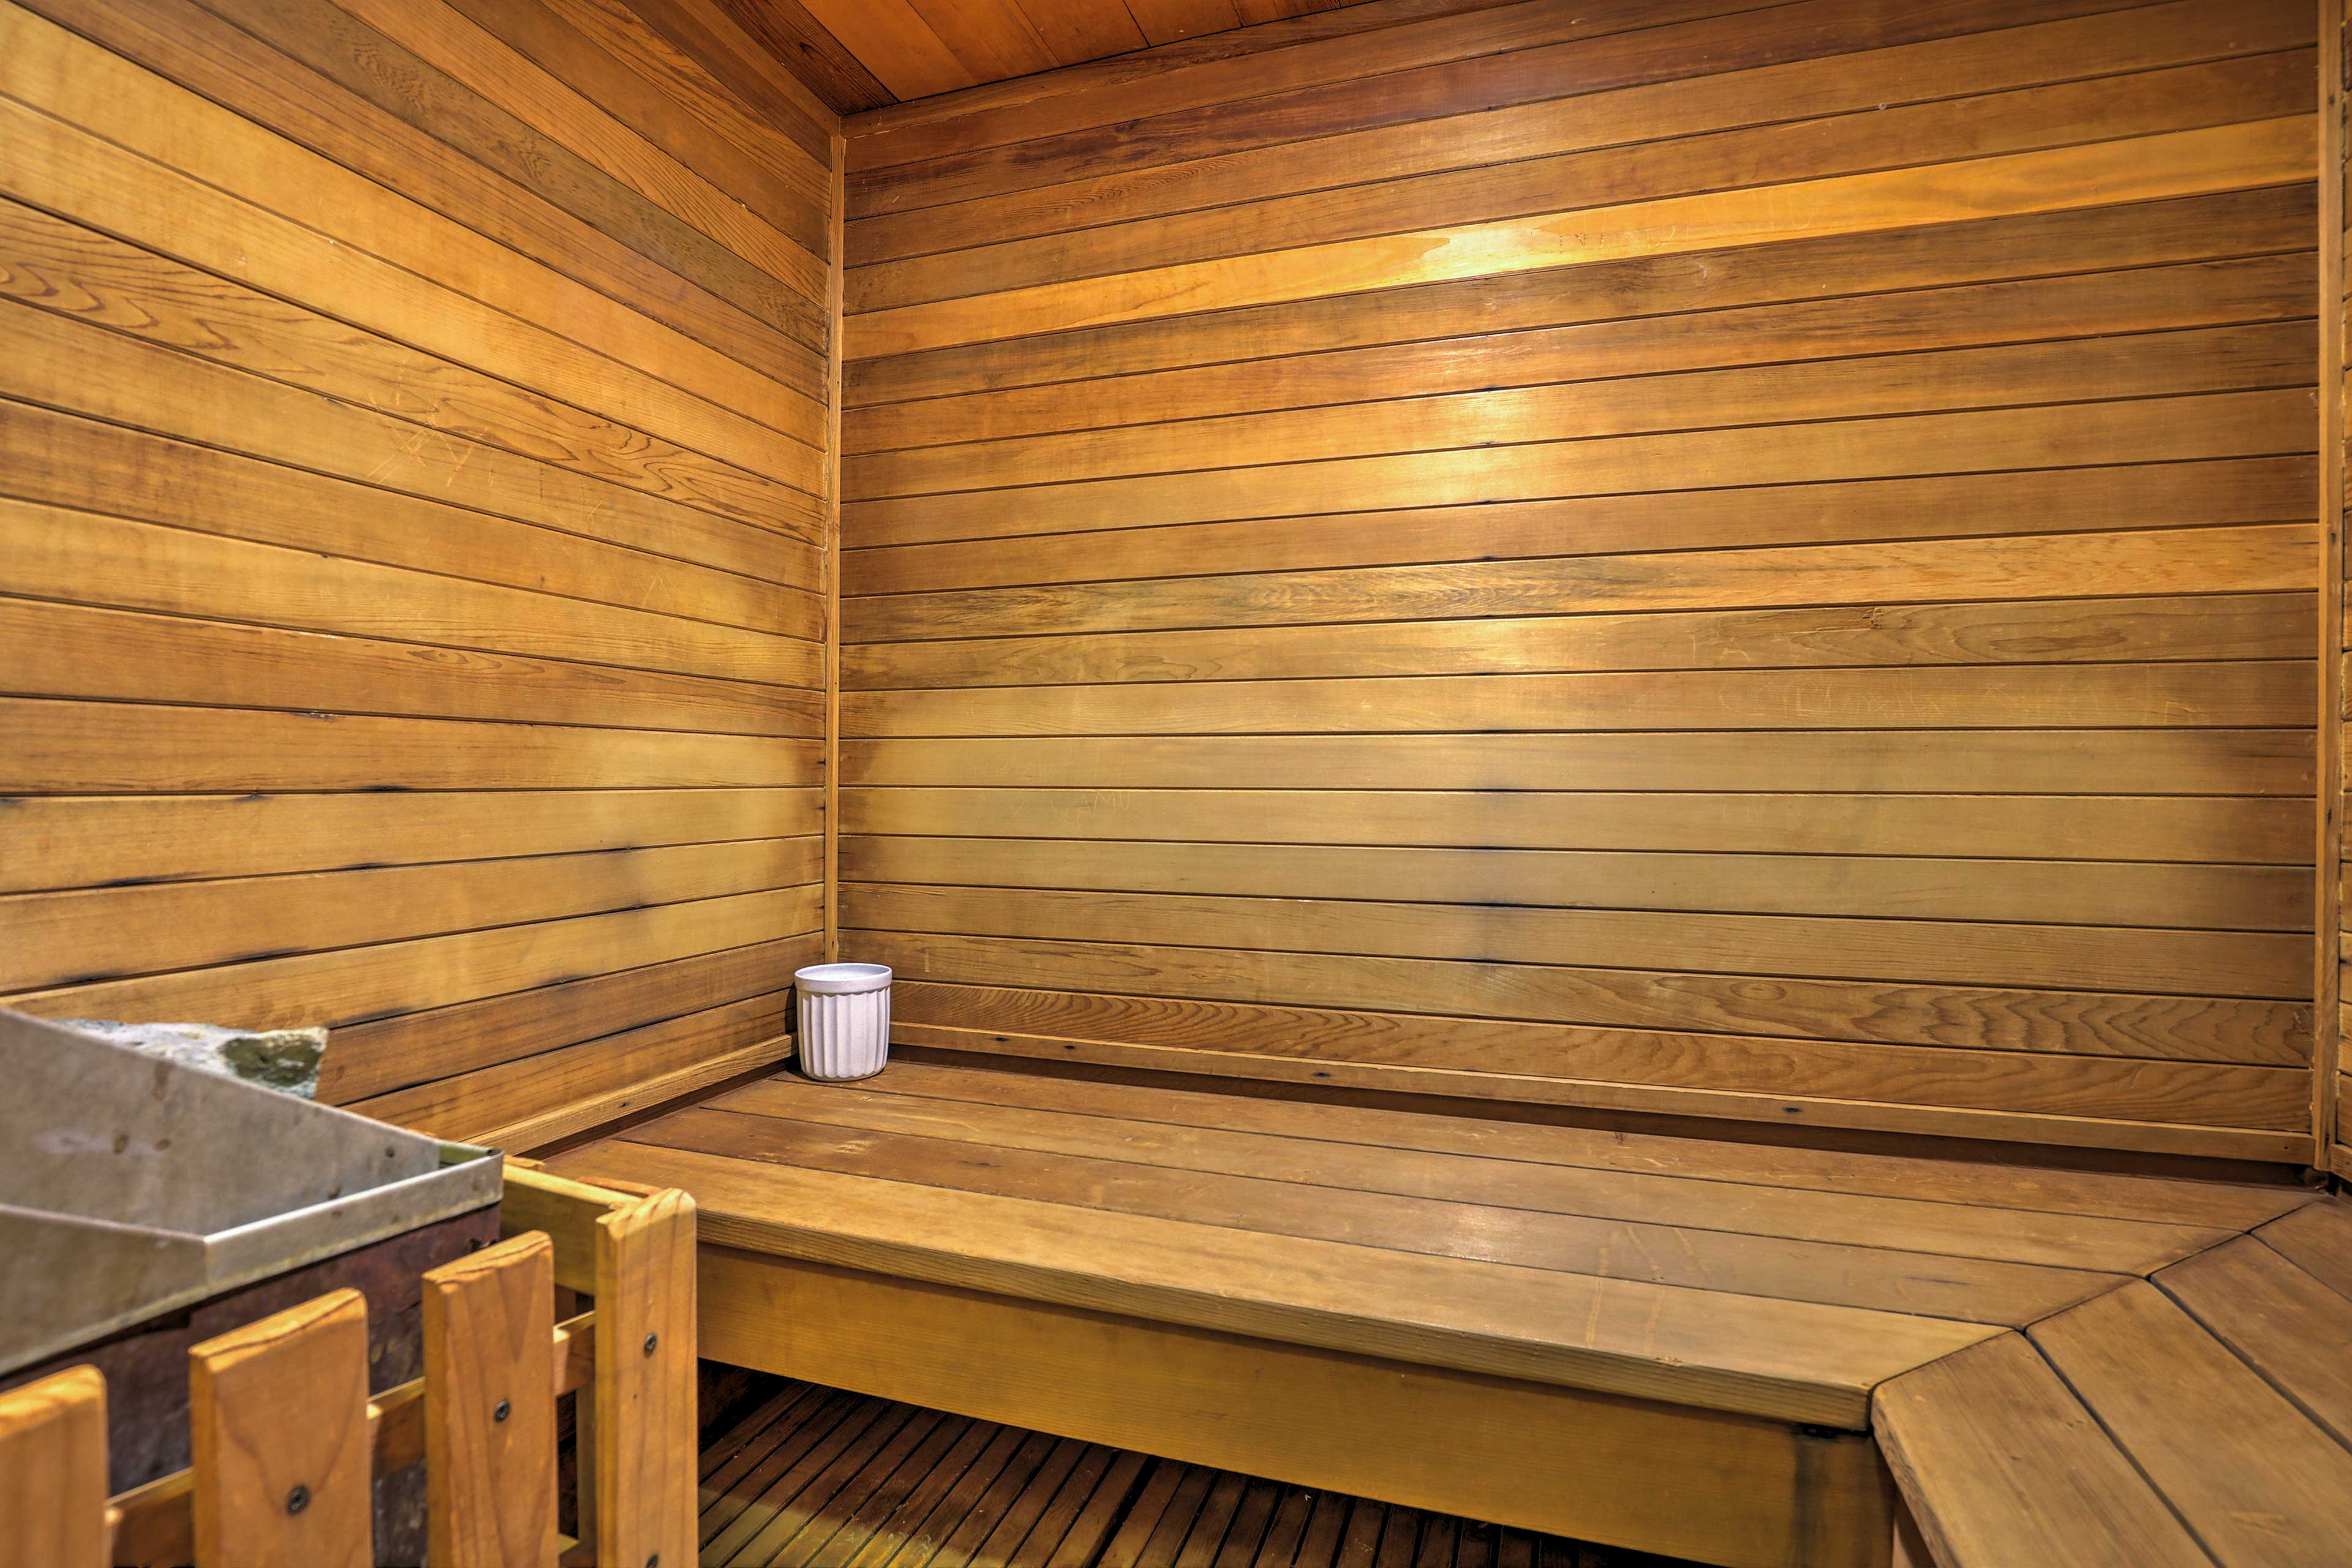 Ease your muscles in the sauna.